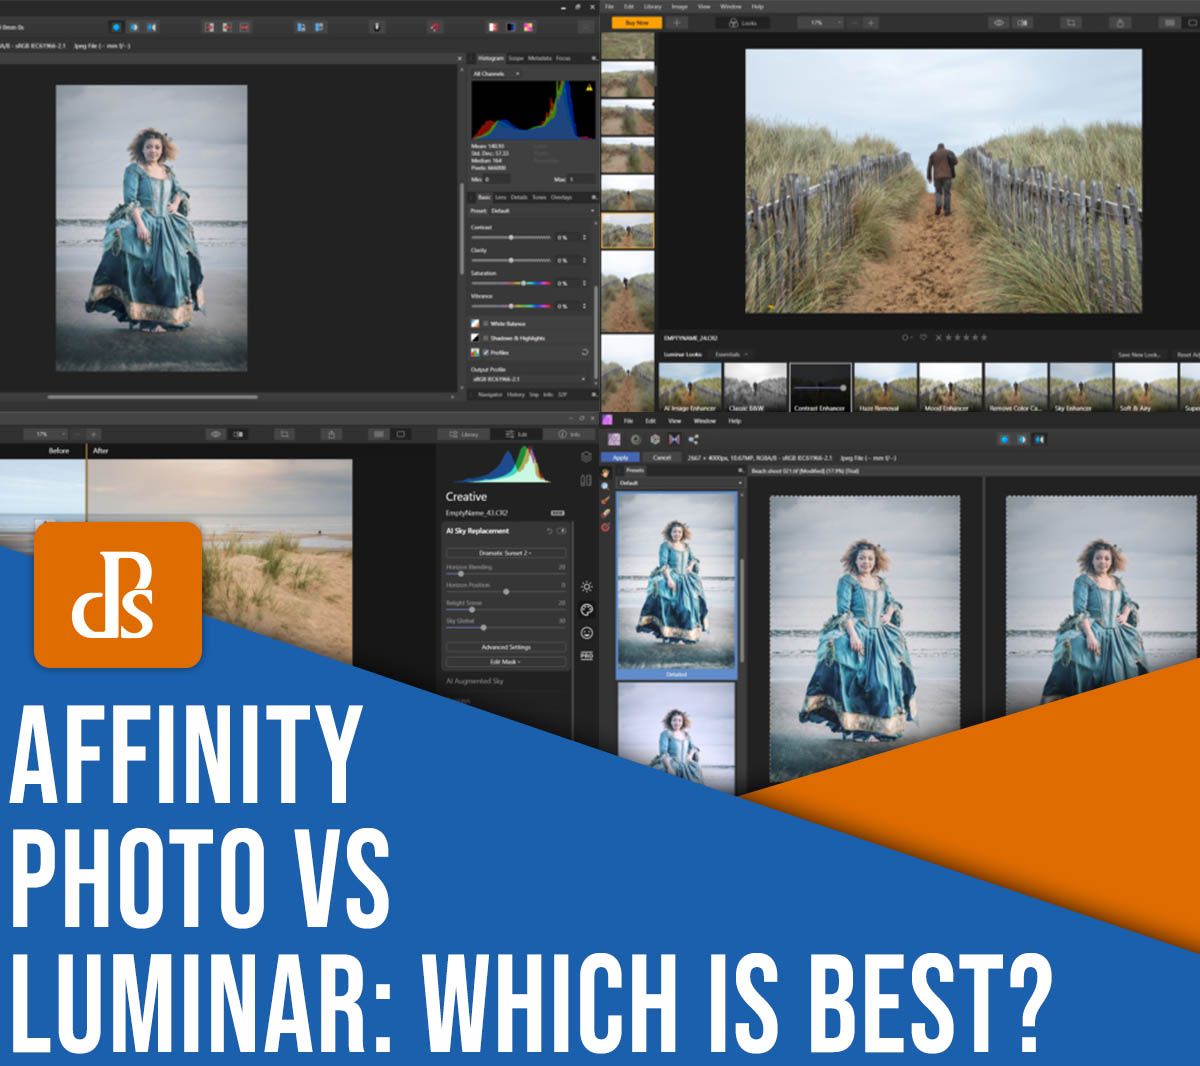 Affinity Photo vs Luminar: Which Editor Is Best in 2021?